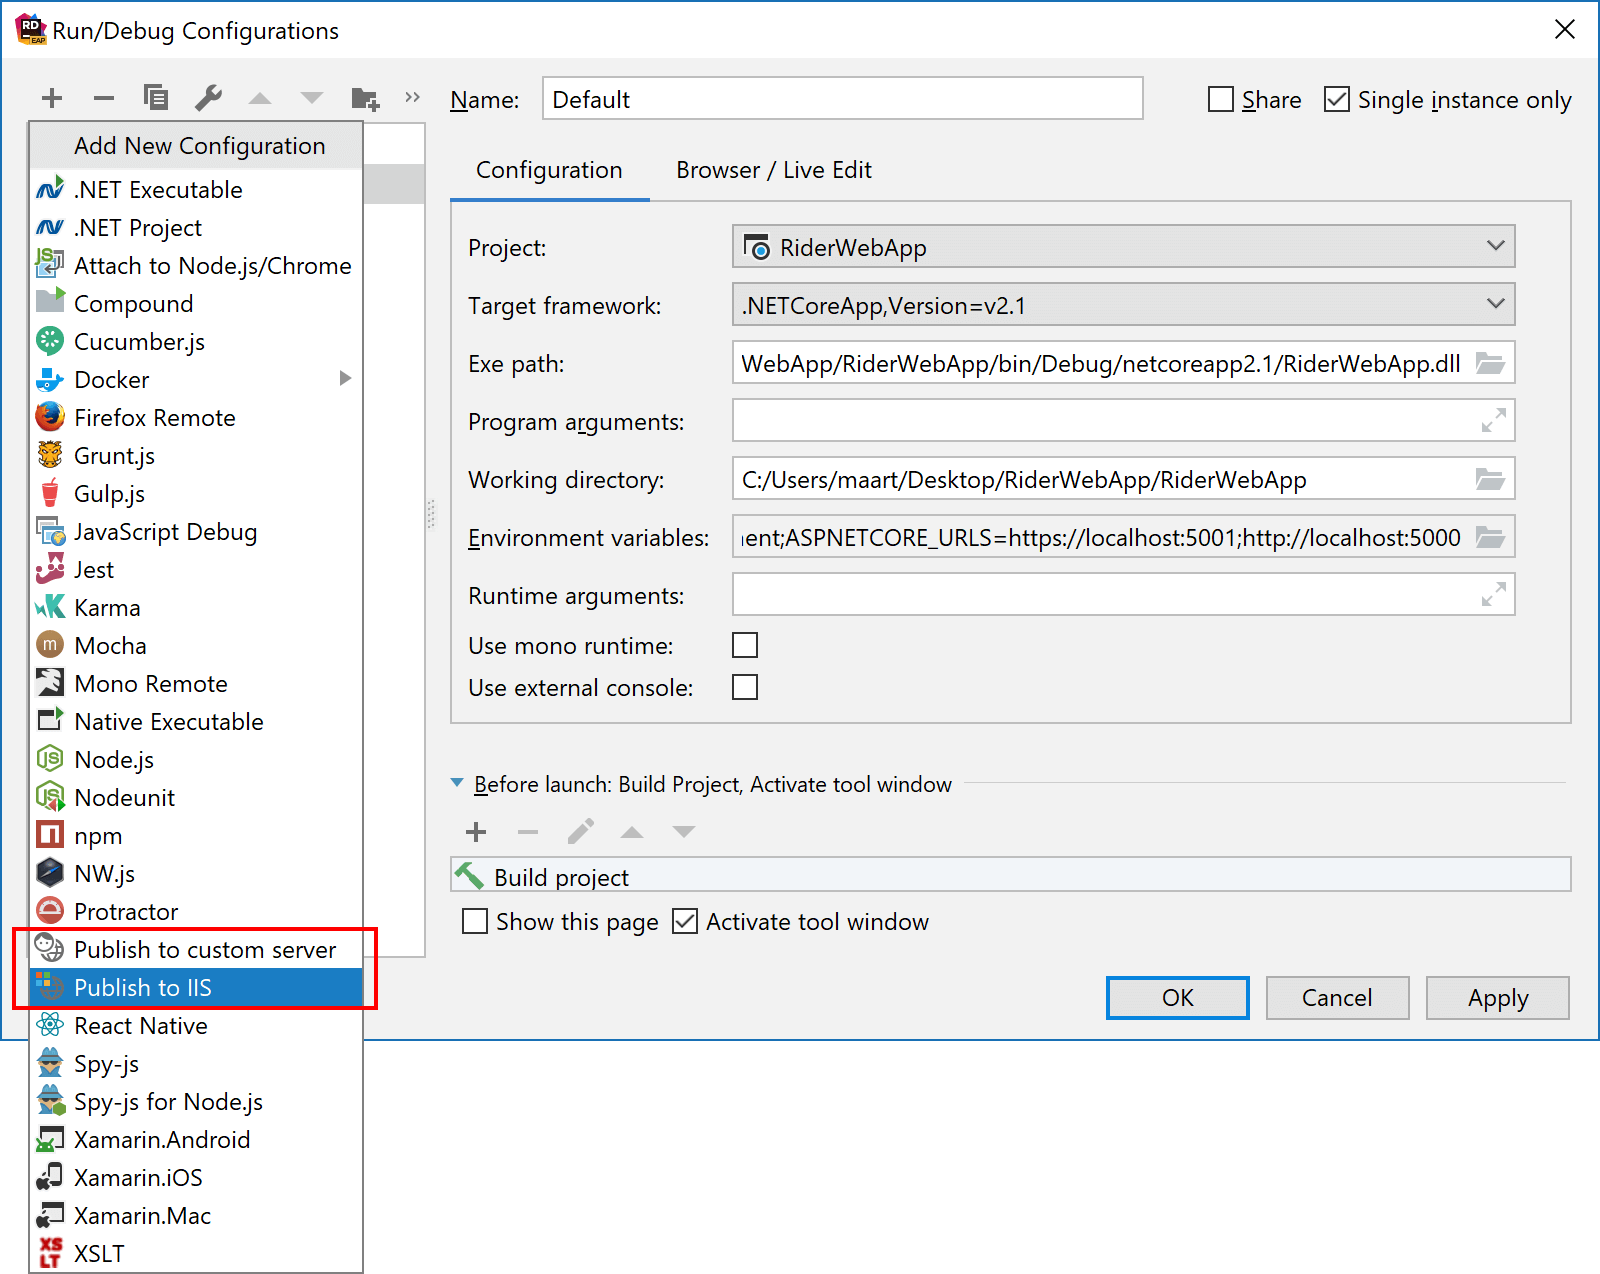 Create new run configuration for publishing a web application using Rider